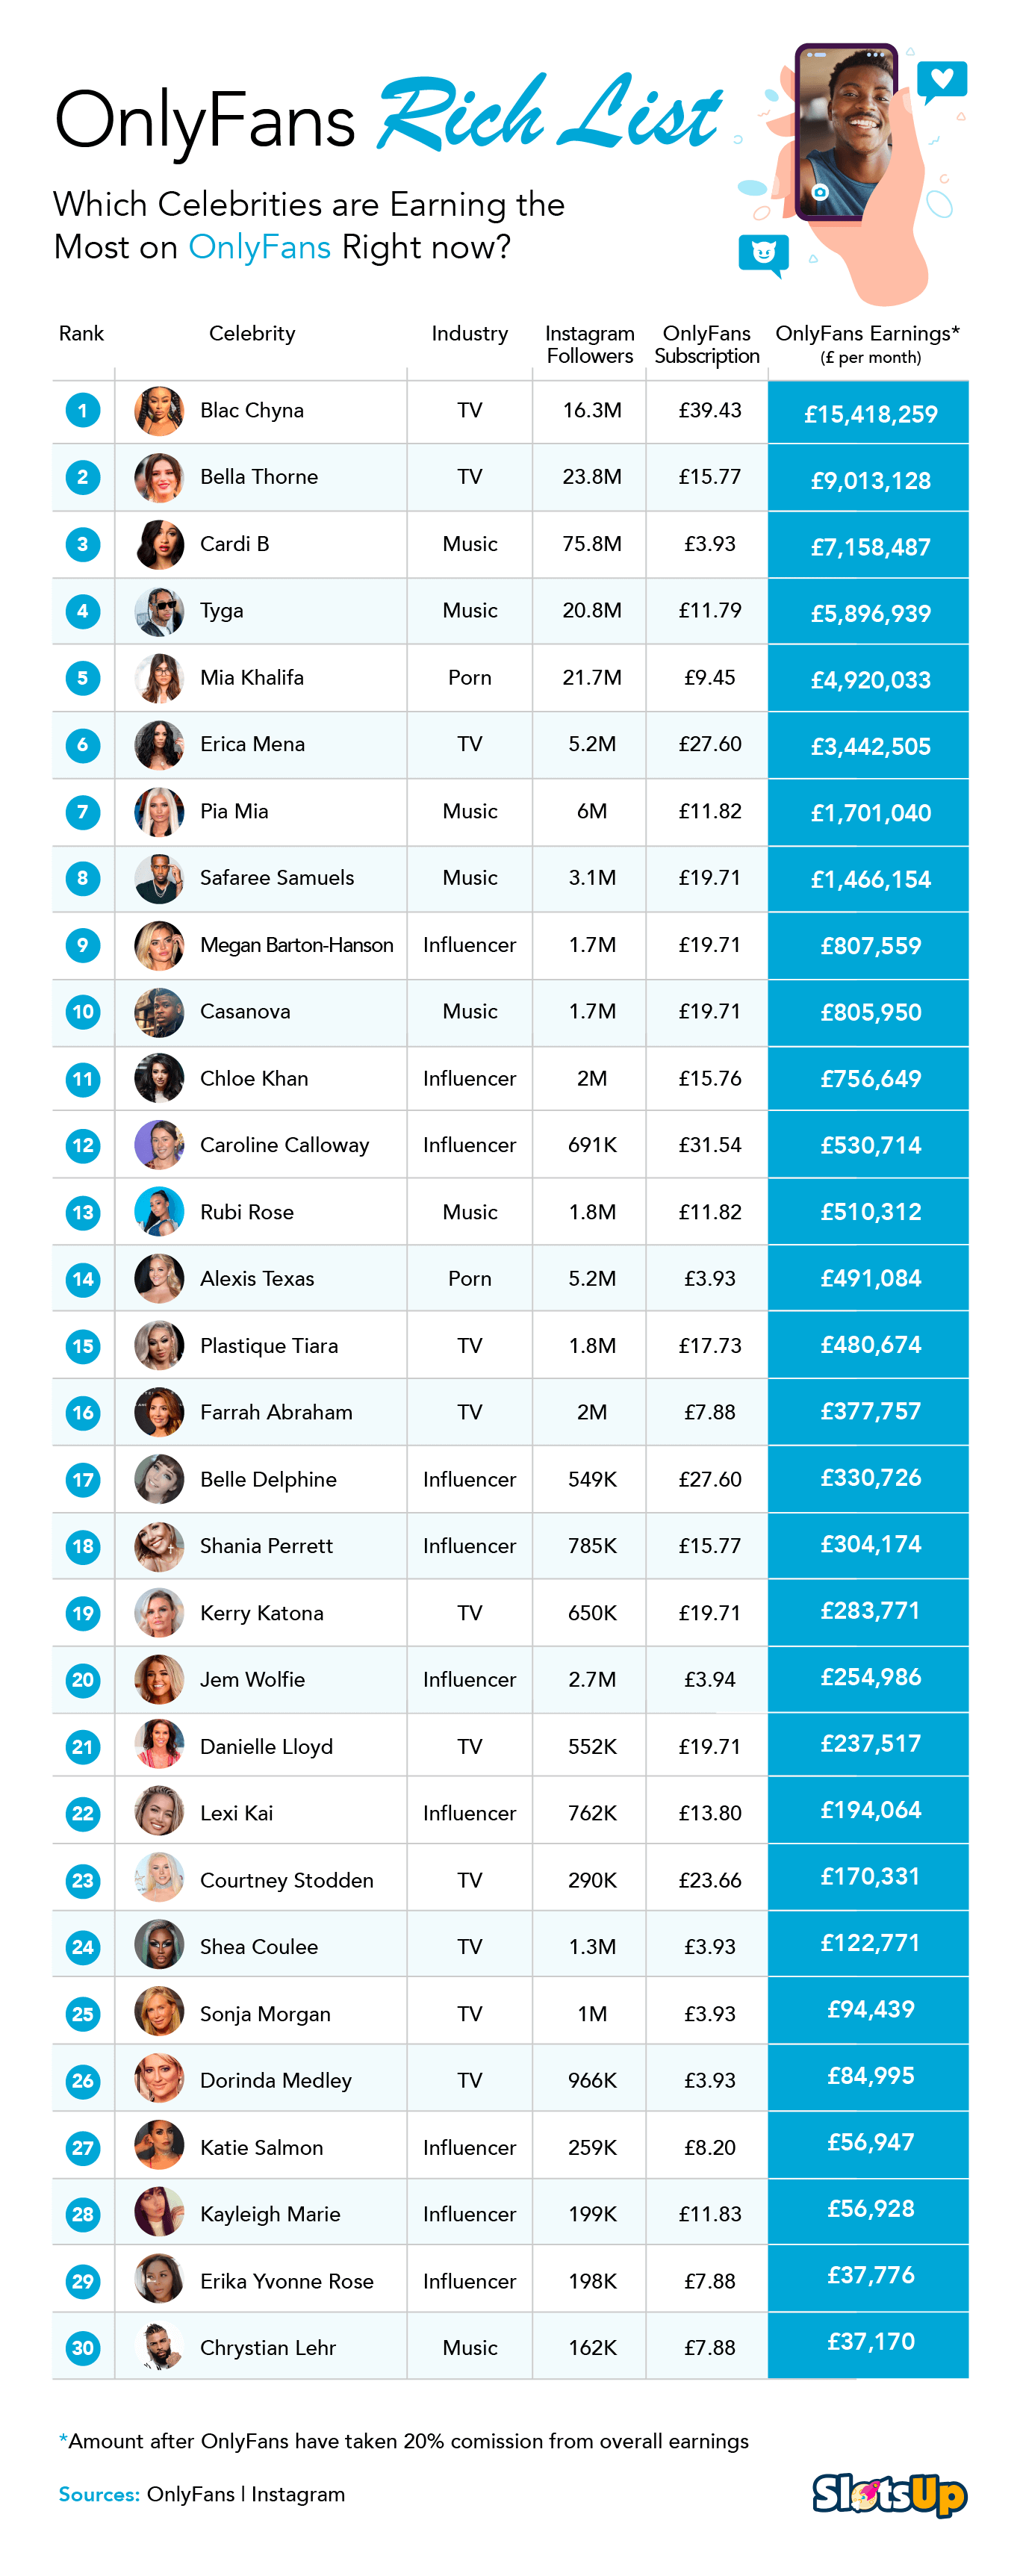 Top Earners On Onlyfans